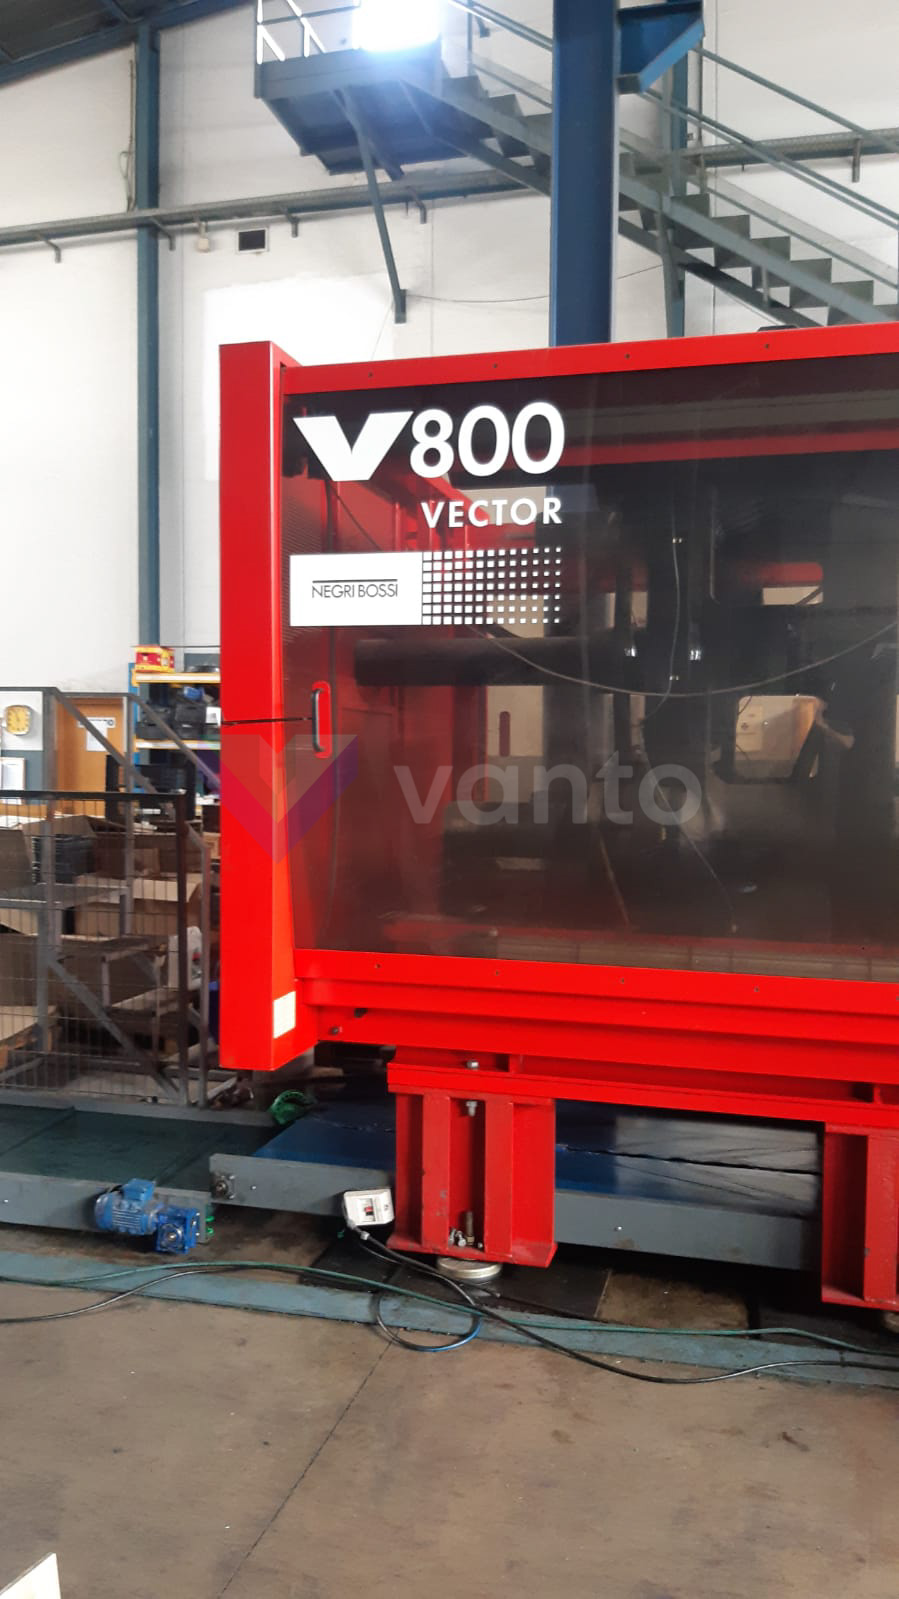 NEGRI BOSSI VECTOR V800 H 6700 800t injection molding machine (2012) id10407